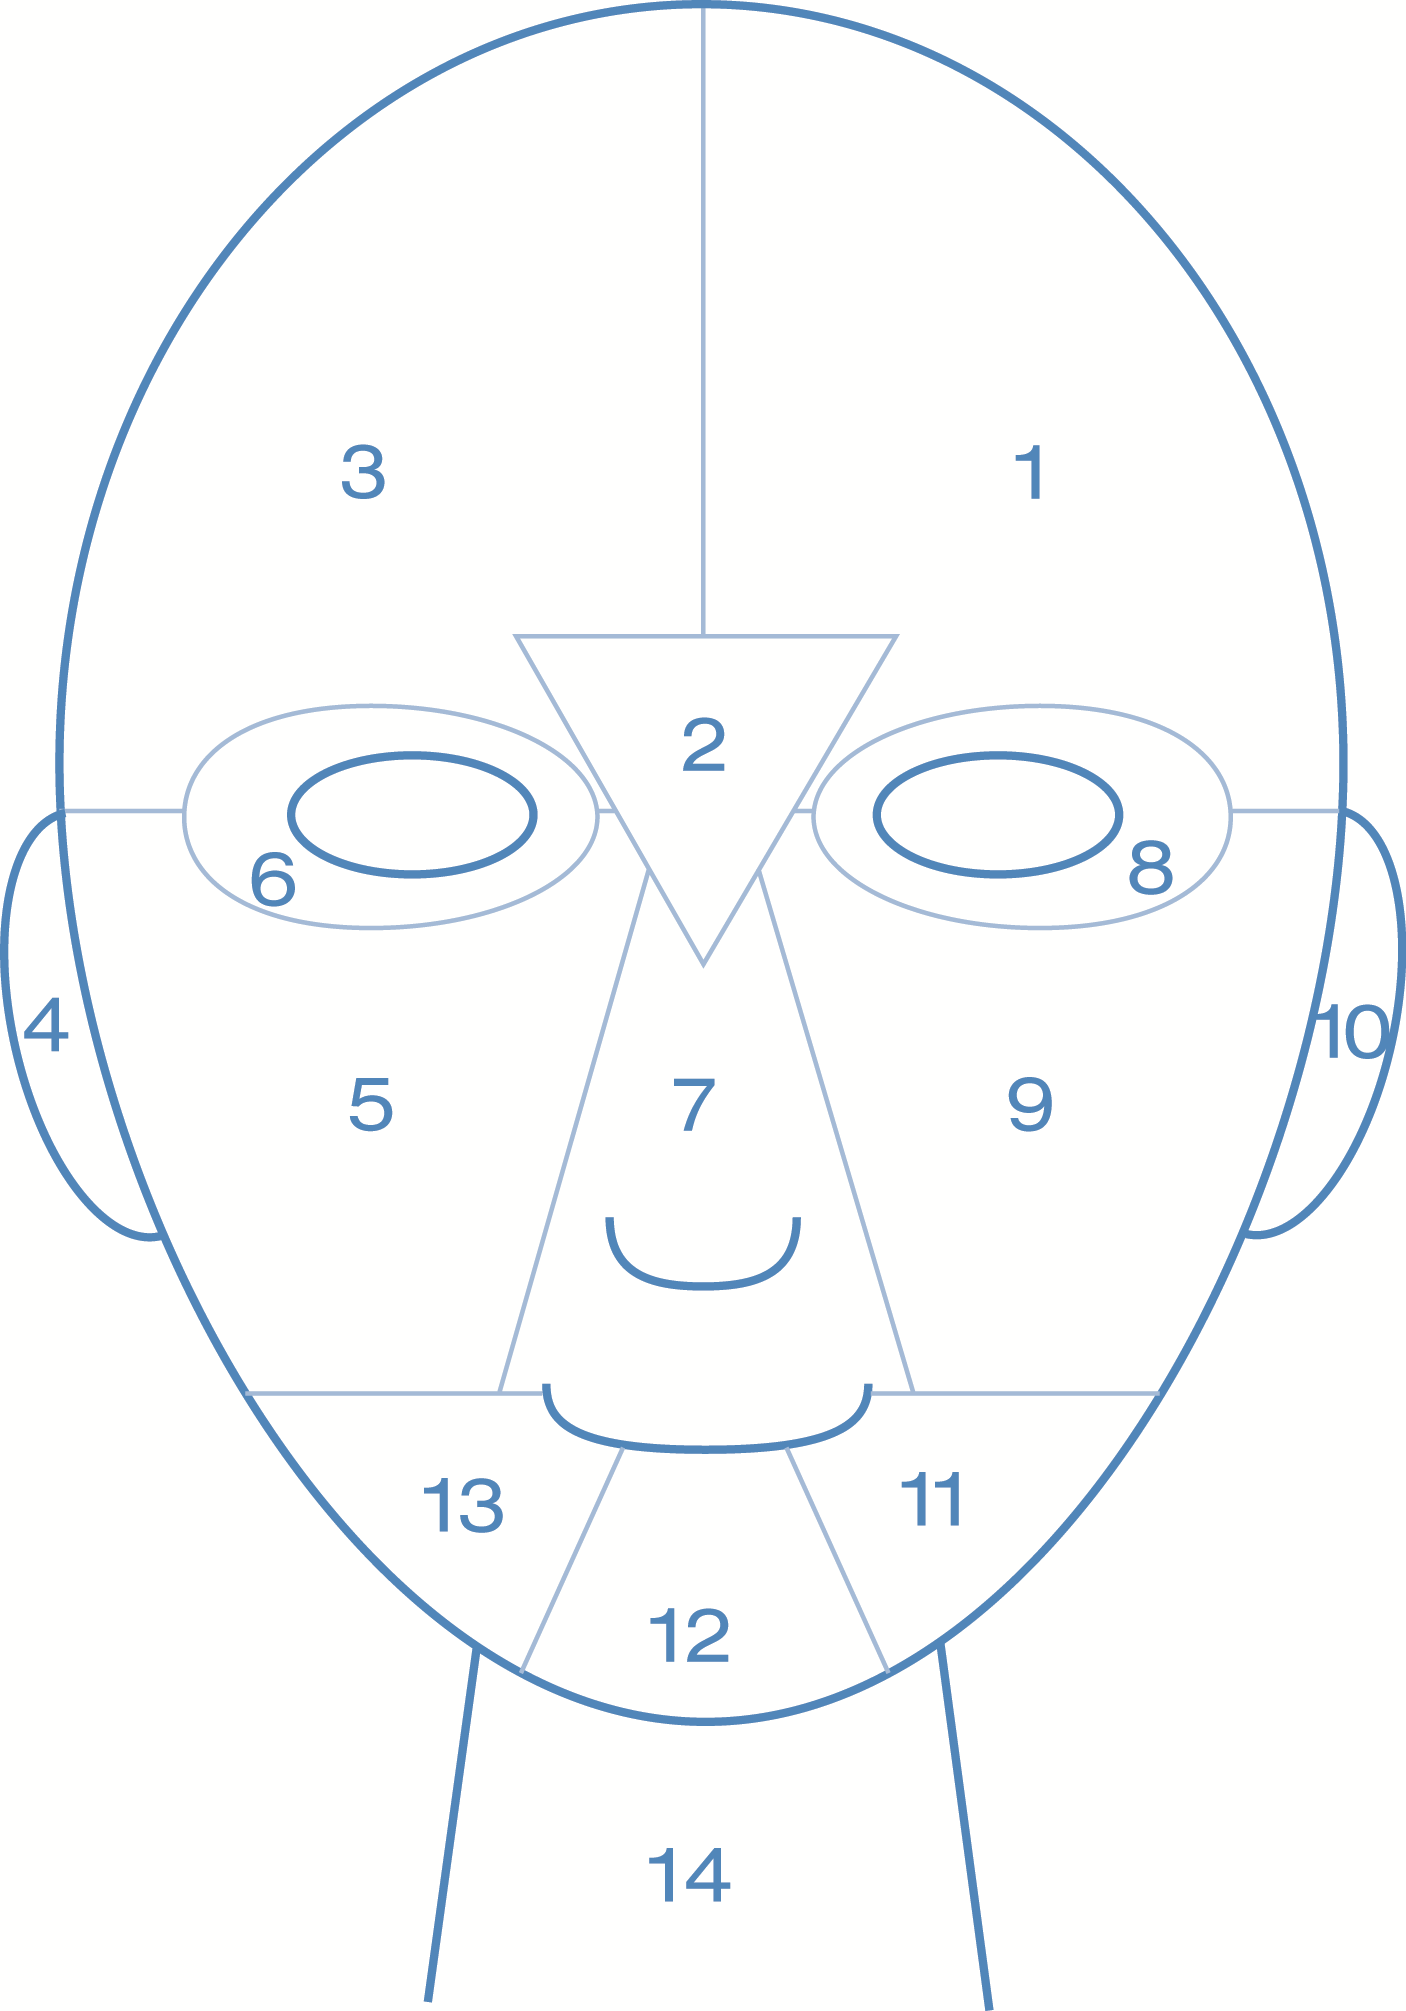 Dermalogica Face Mapping / Dermacia Pharmacy